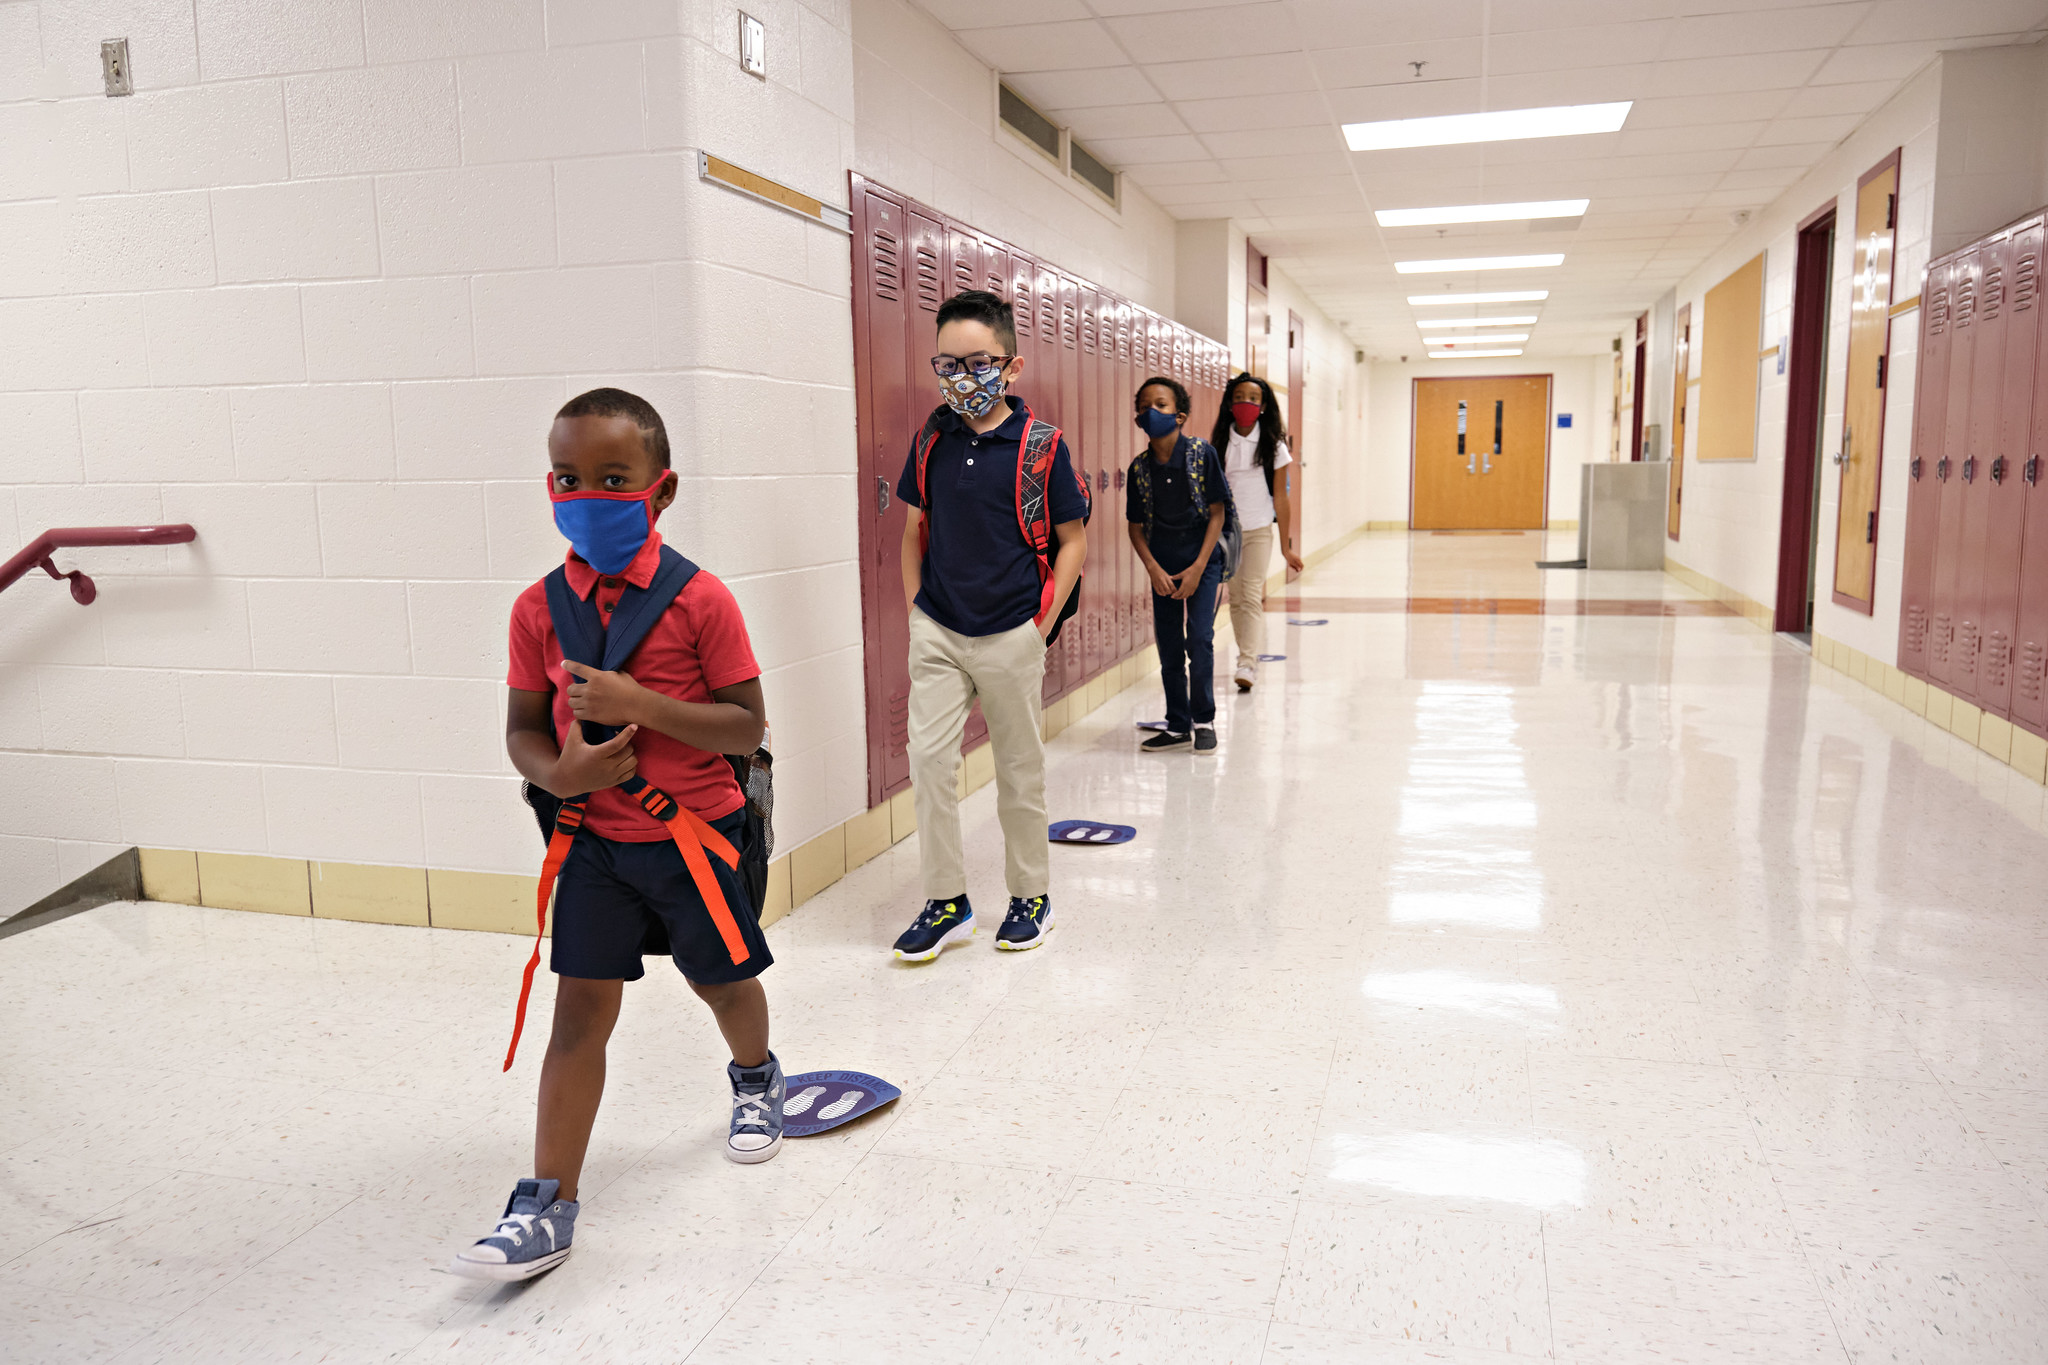 American Rescue Plan and other COVID relief funds should help close some of the access and equity gaps widened by COVID, the Department of Education says in a new report.